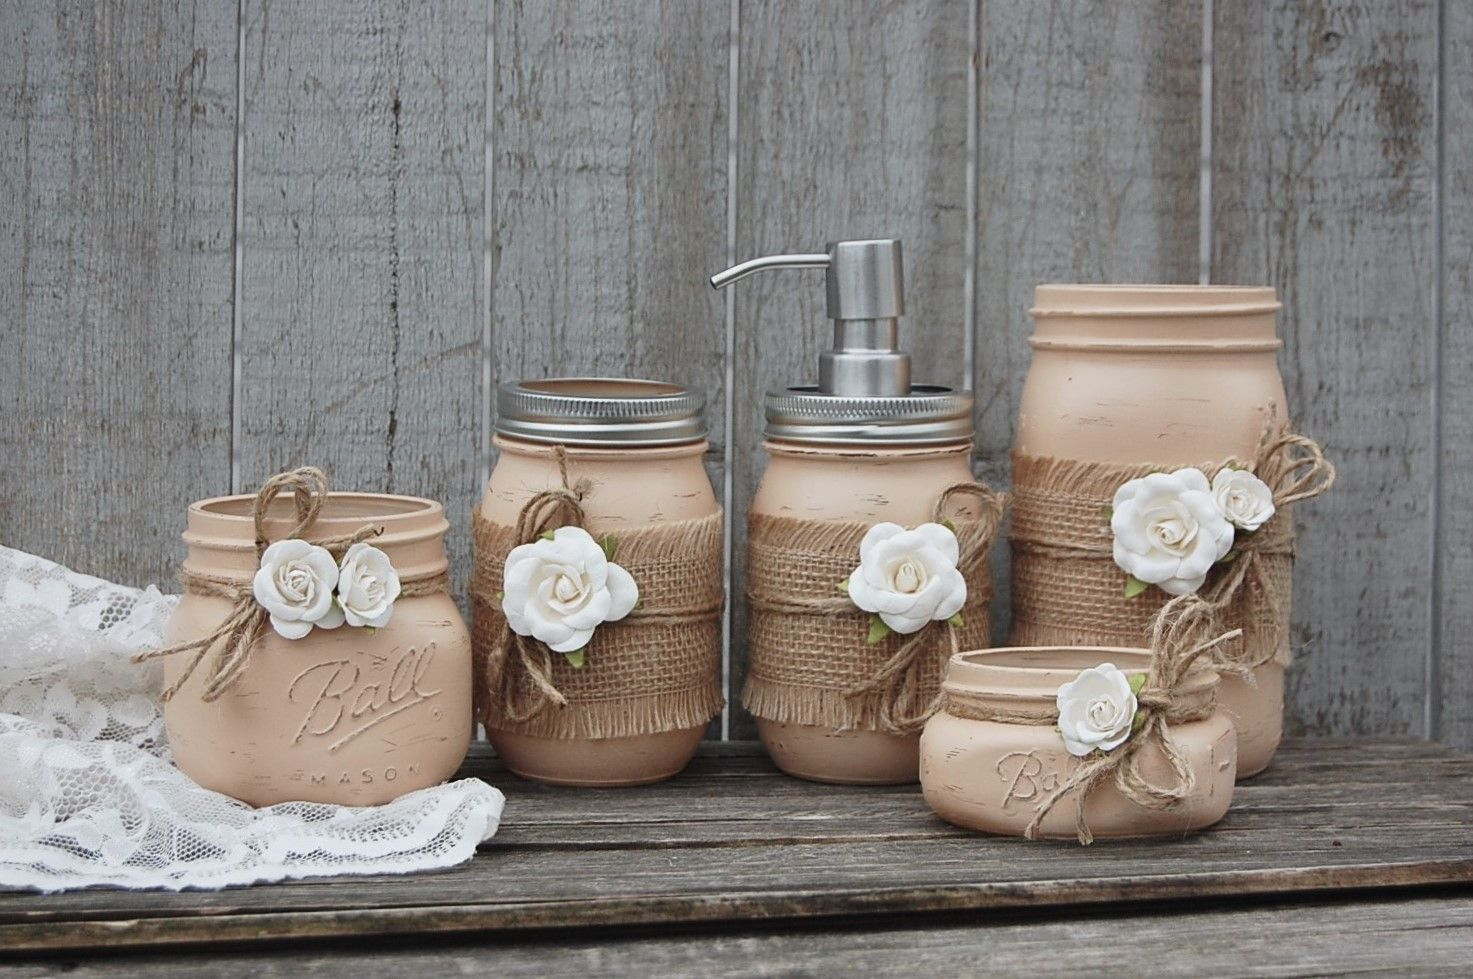 neutral bath decor | mason jar bathroom, toothbrush holders and burlap